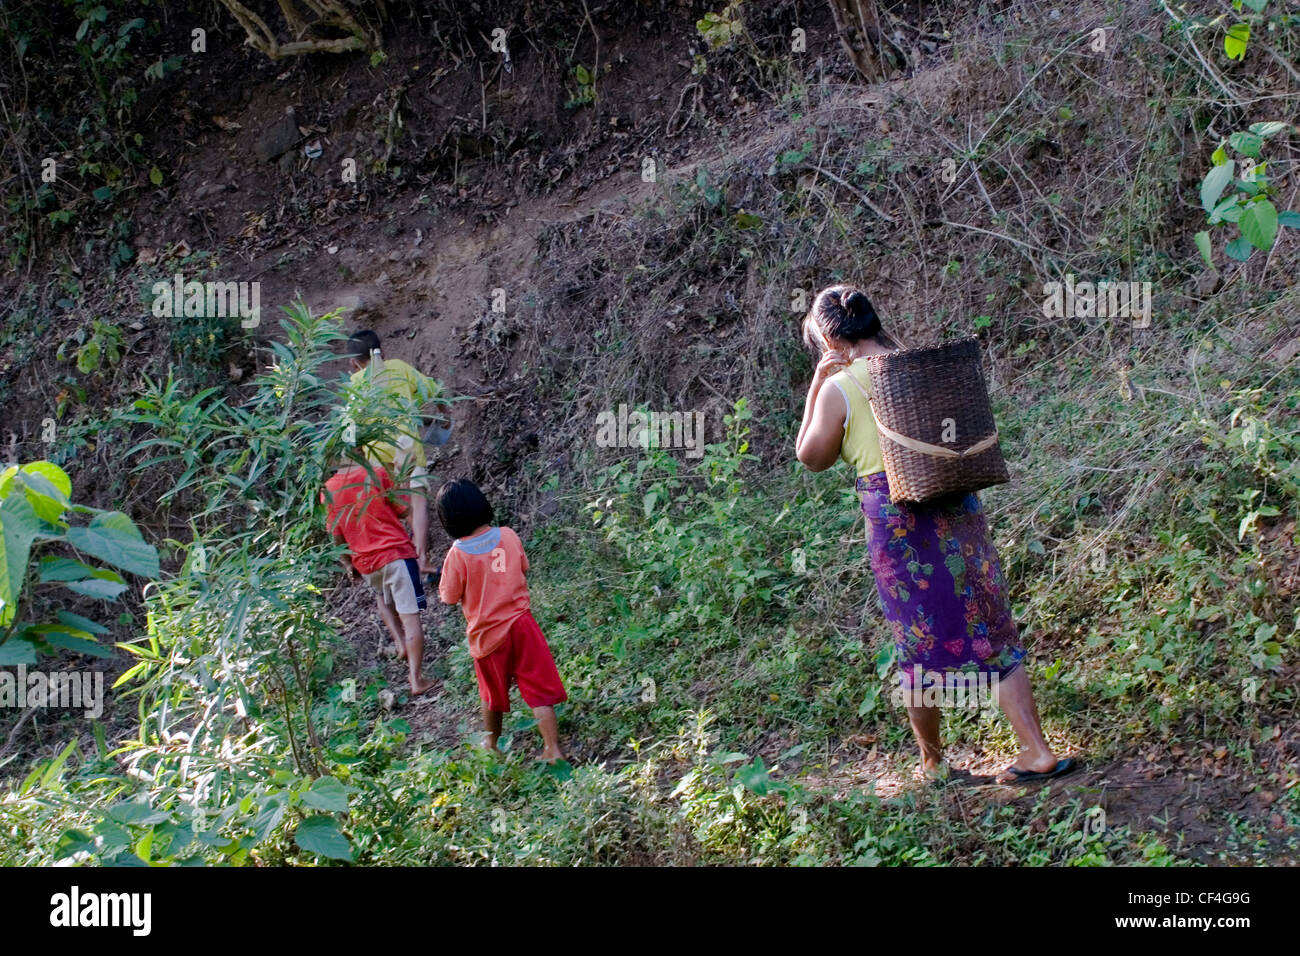 A Karen refugee woman from Burma is walking in Salawin National park with her children near Ban Tha Ta Fang, Northern - Stock Image